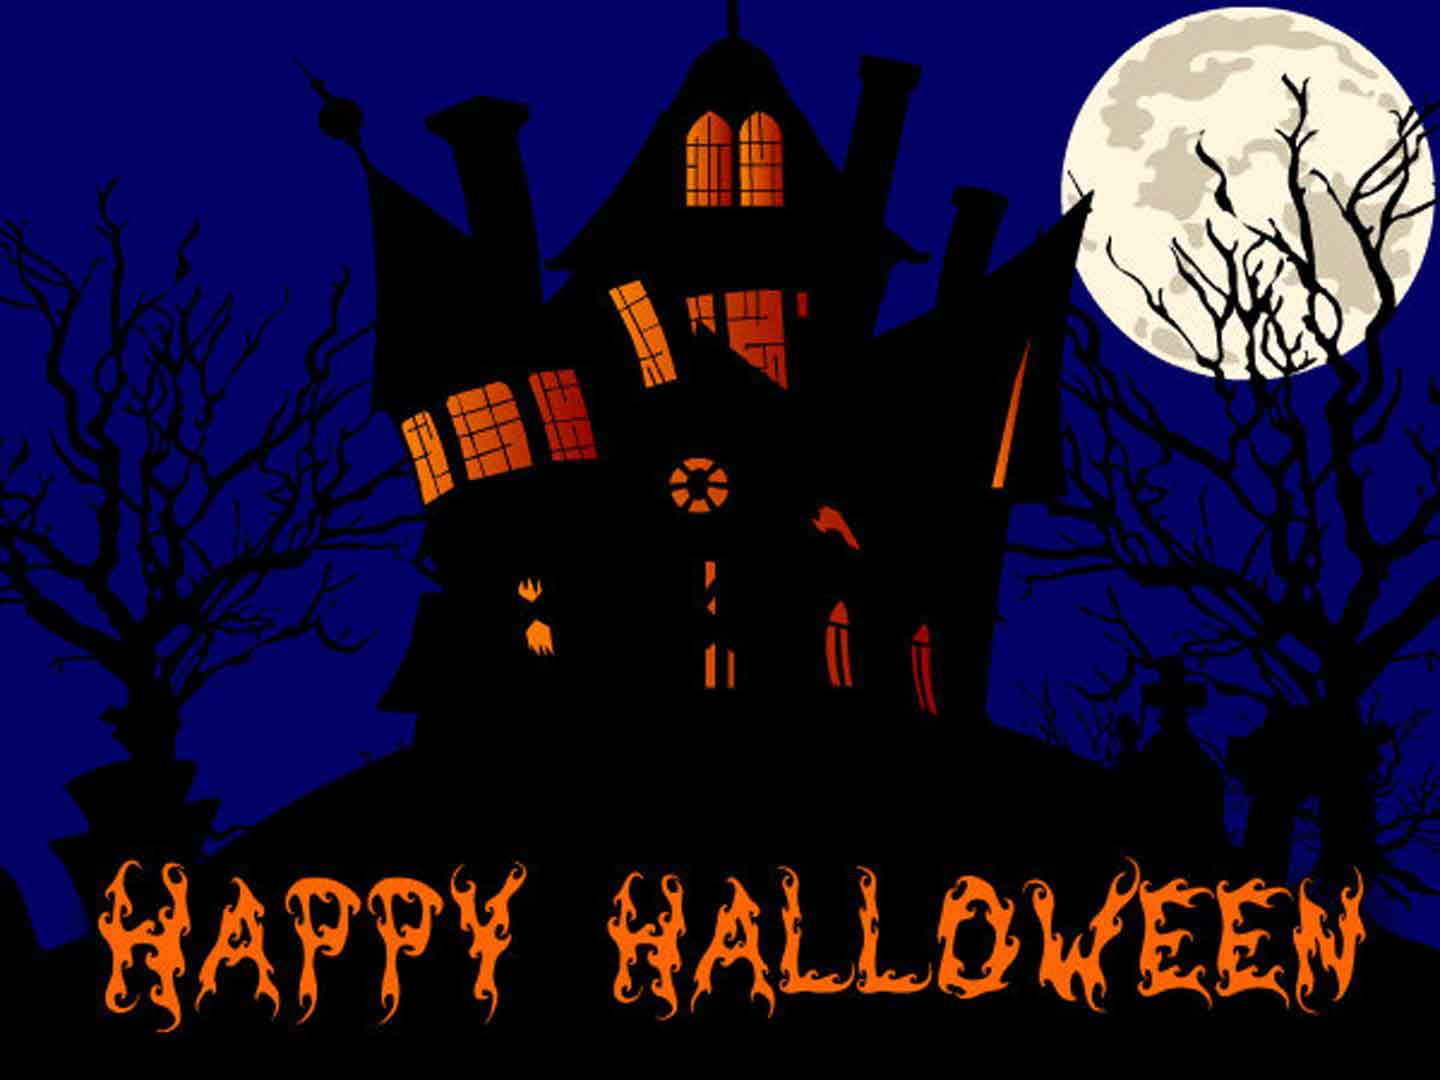 https://i0.wp.com/www.justitiarul.ro/wp-content/uploads/2015/01/happy-halloween-wallpaper-free-7.jpg